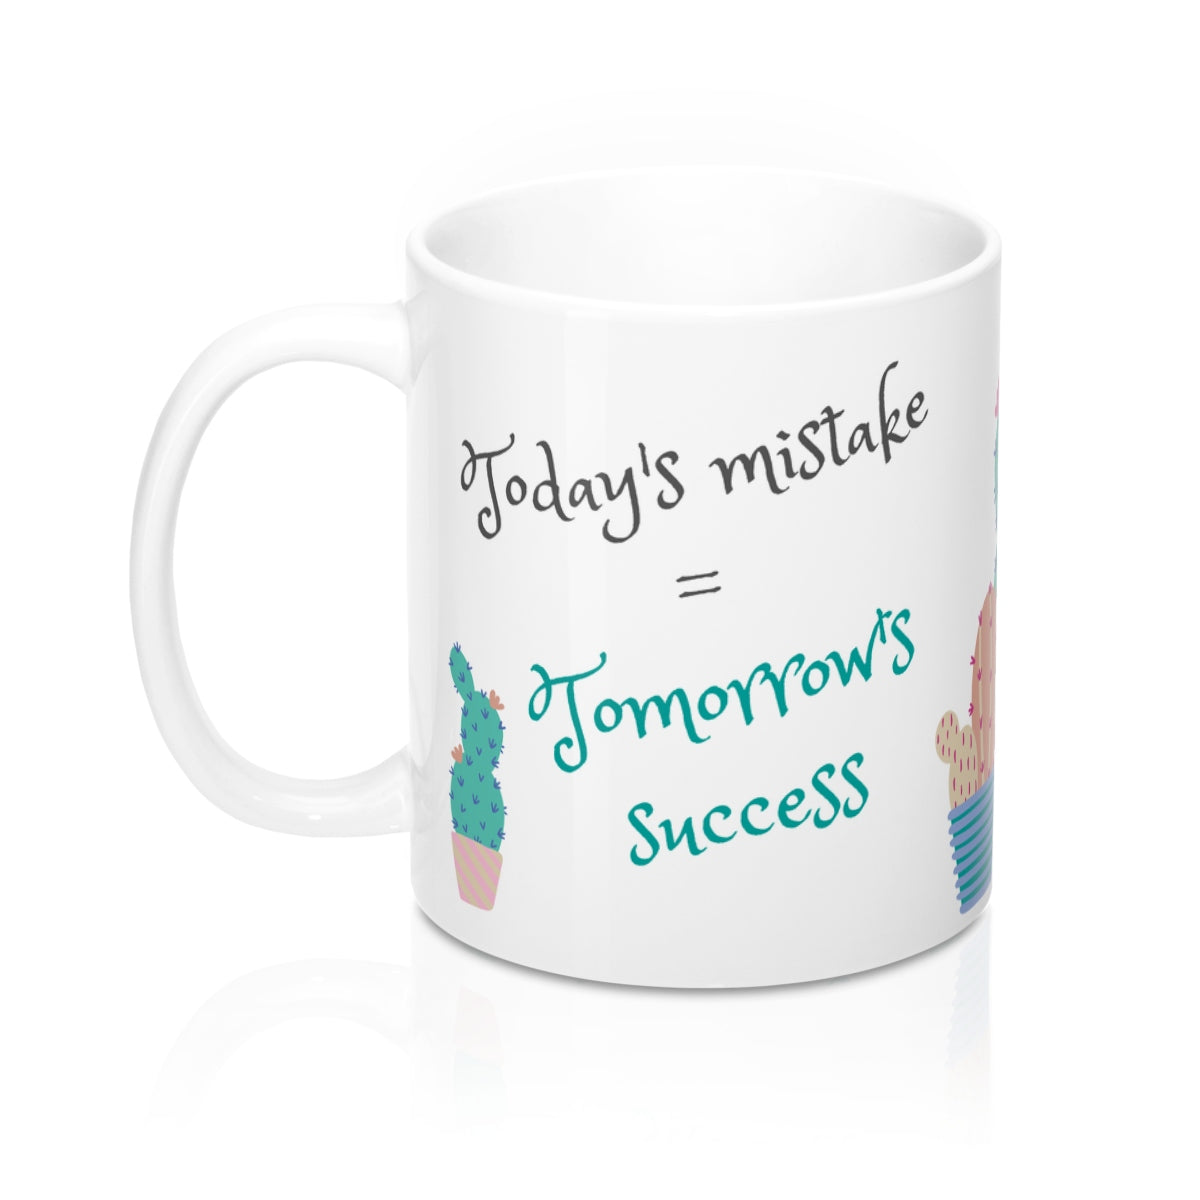 Today's Mistake, Tomorrow's Success Mug